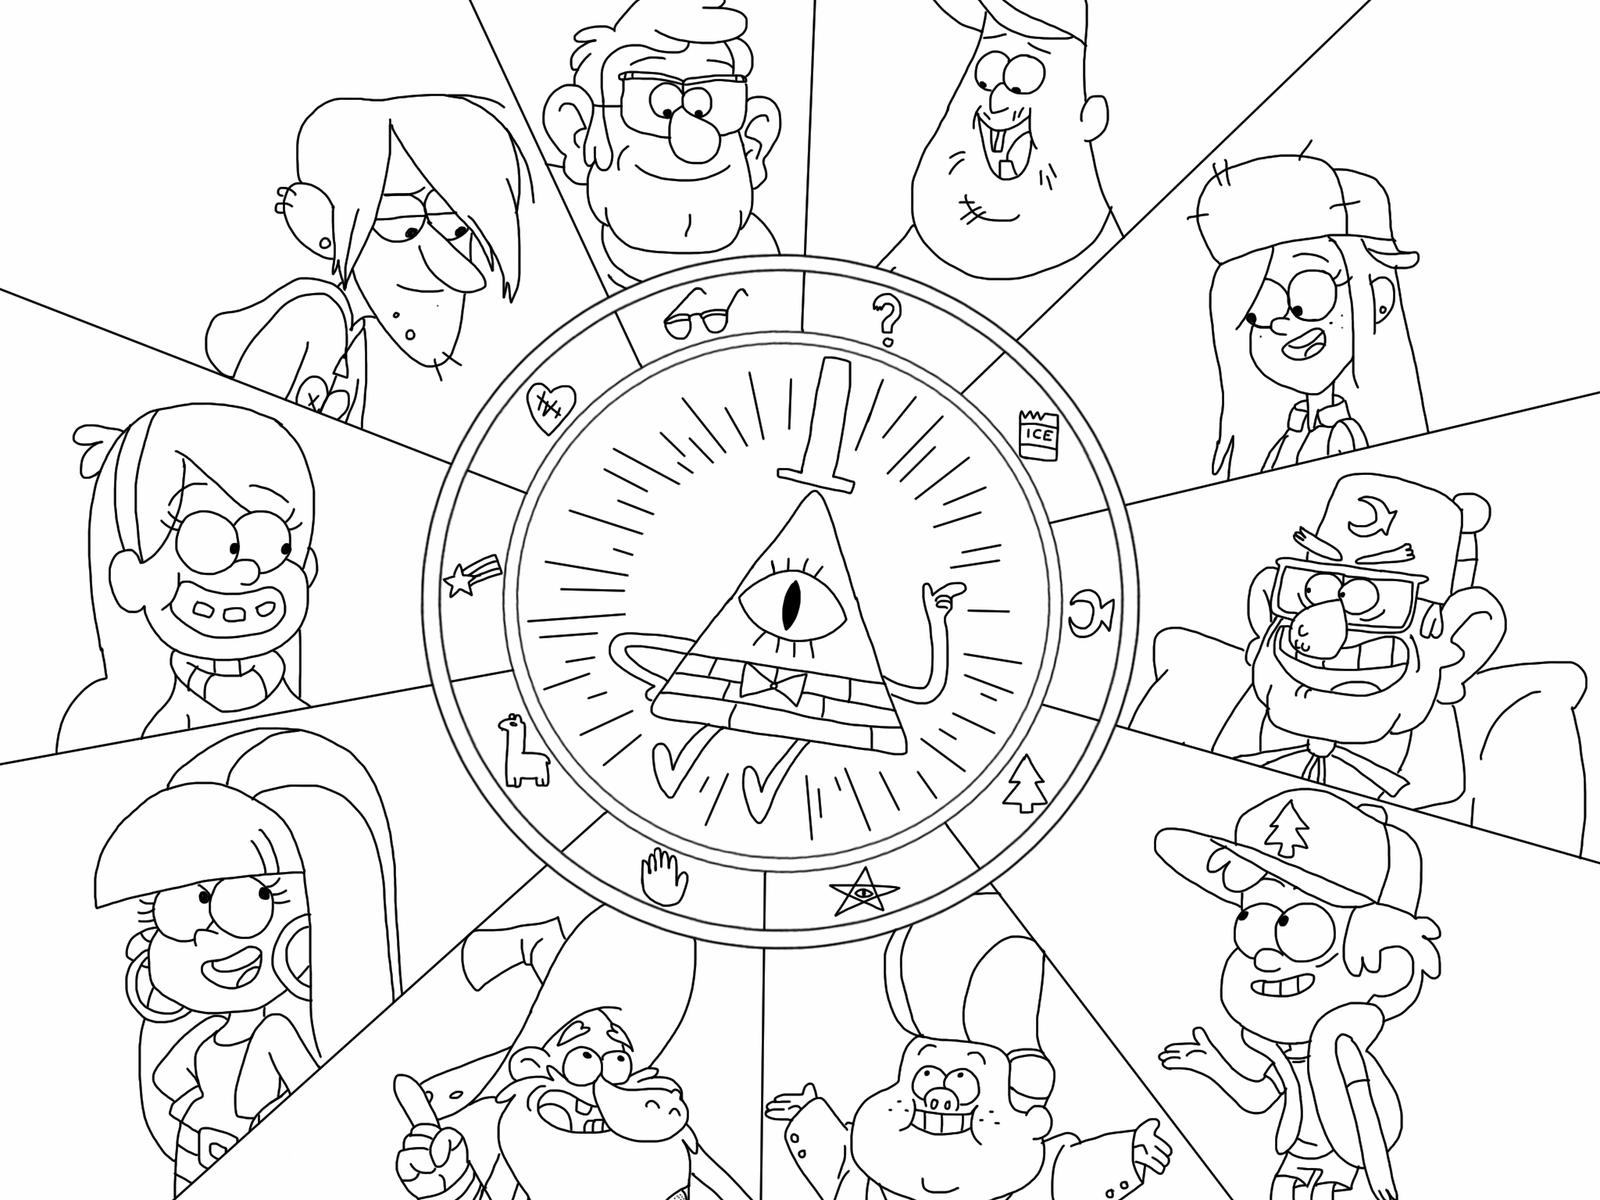 Bill cipher coloring pages ~ Bill Cipher Gravity Falls Coloring Pages Coloring Pages